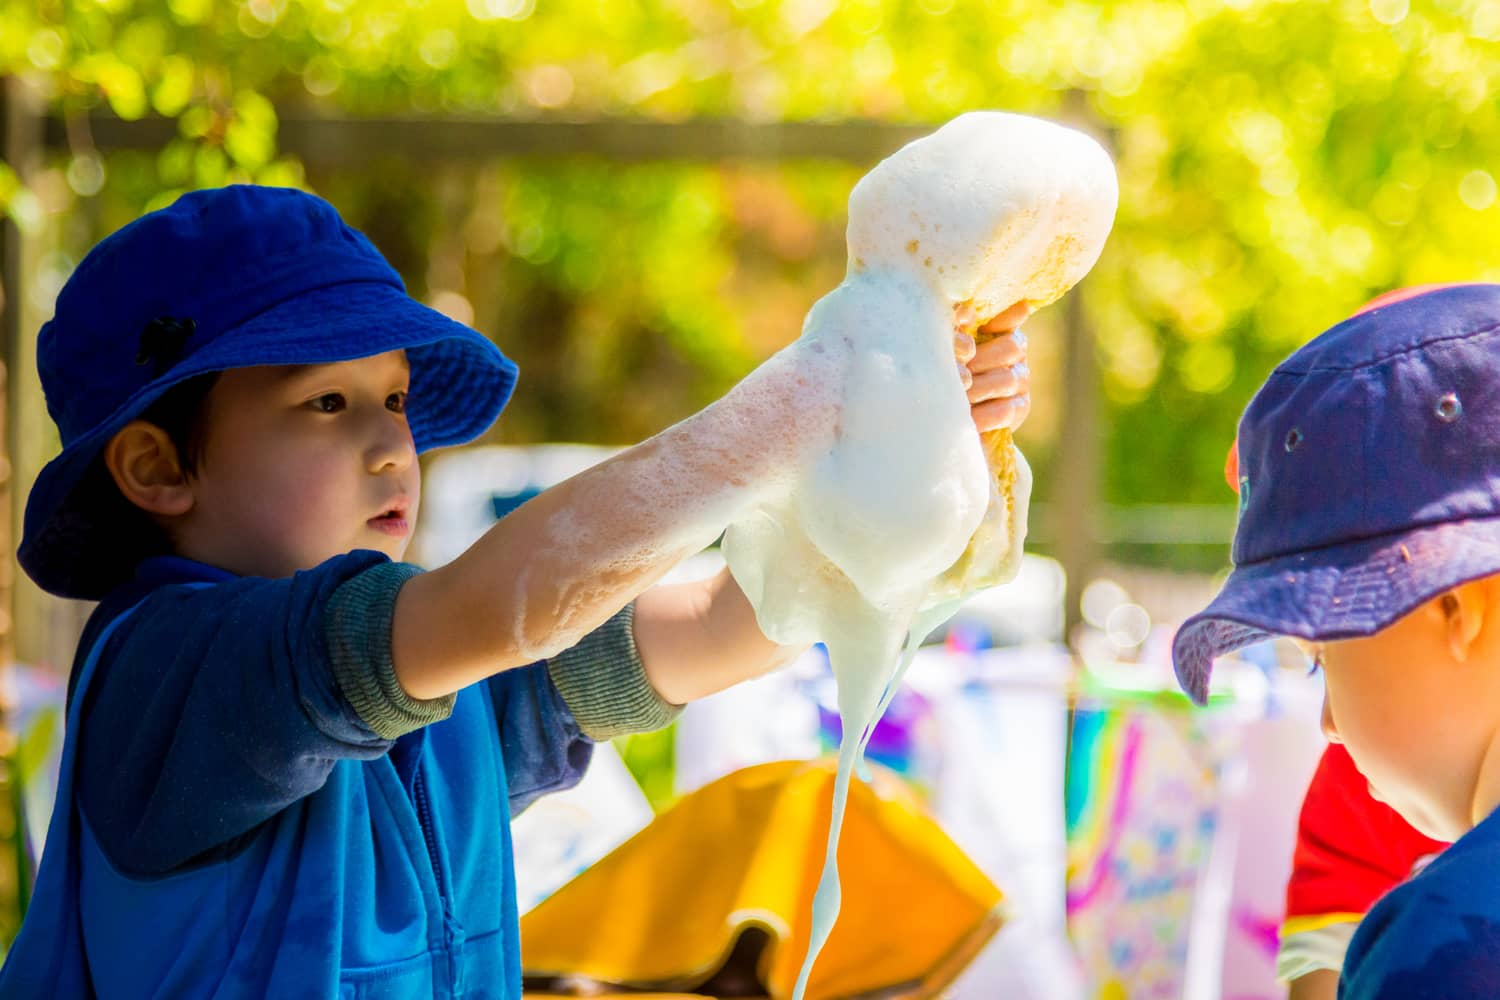 Boy in blue hat playing with water and sponges at Chiselhurst Kindergarten